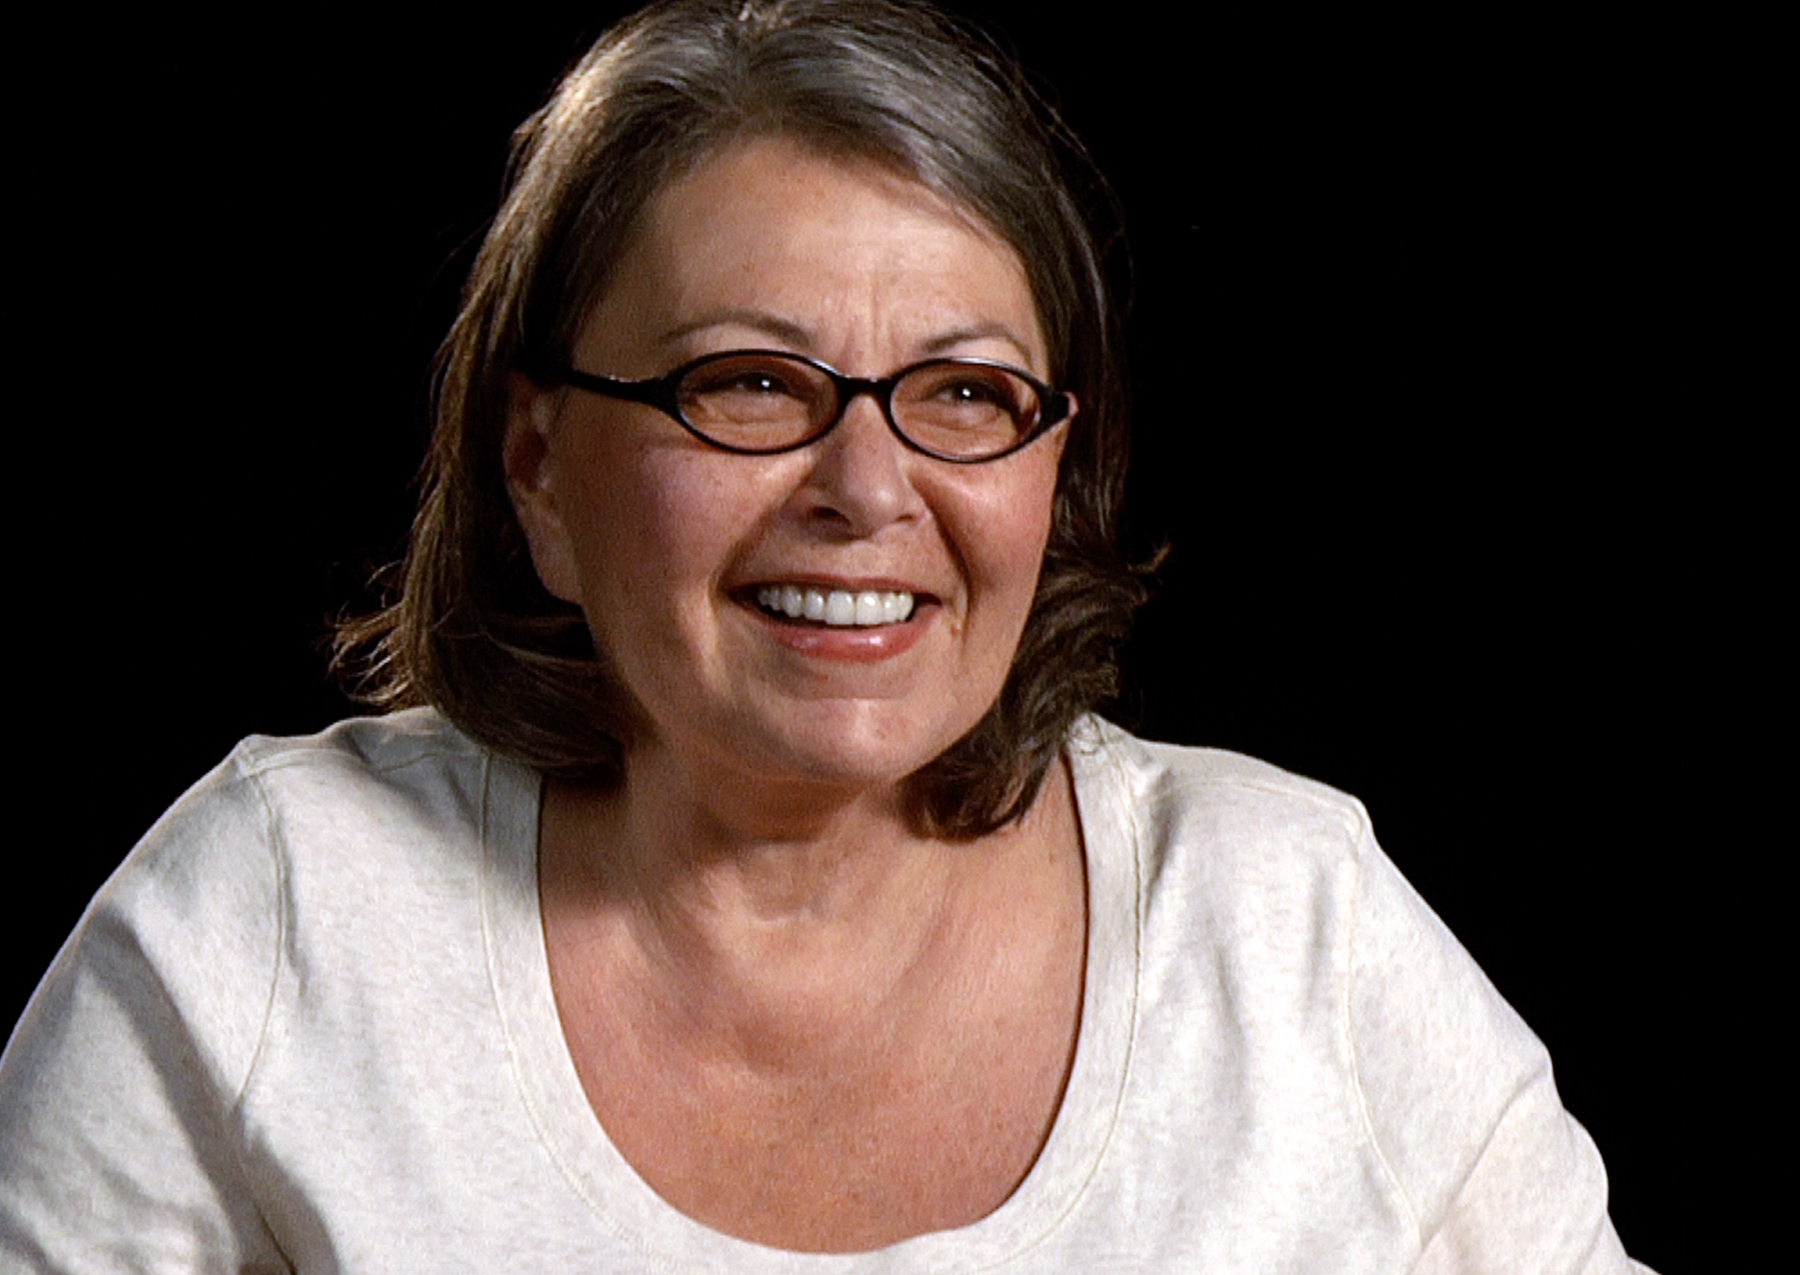 Roseanne Barr: I'm moving to Israel when 'The Conners' premieres